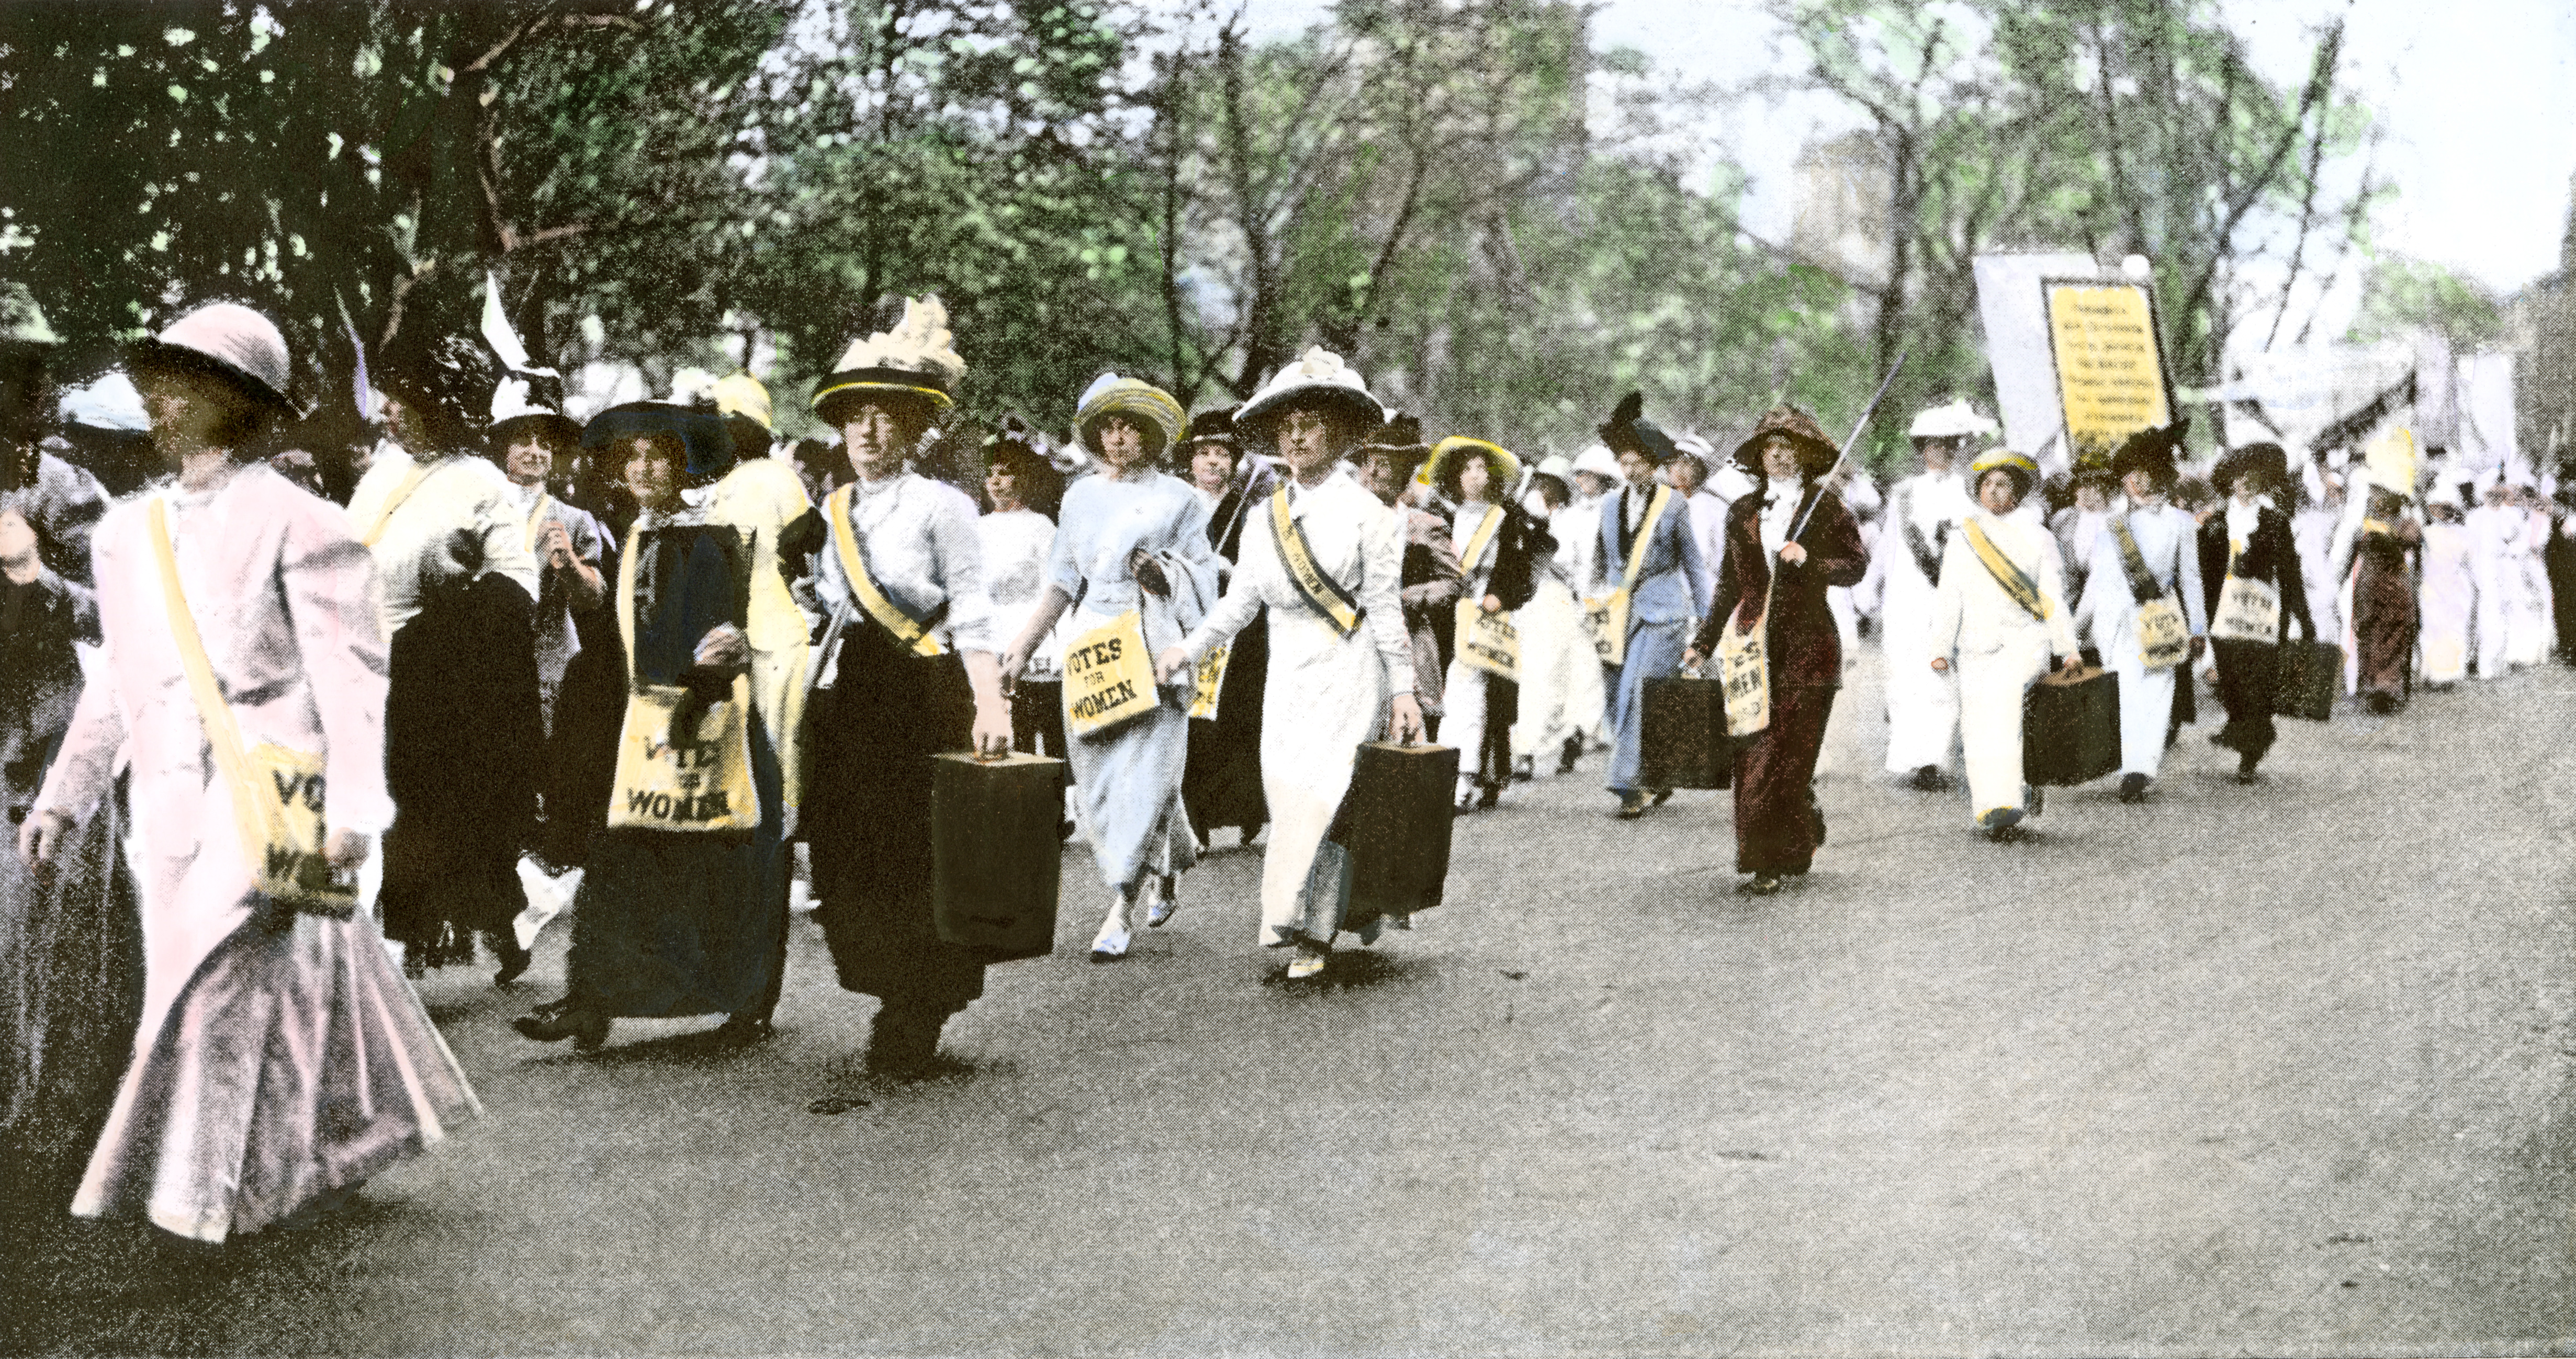 Suffragette marchers carrying portable speaker rostrums, New York City, 1912.                   Hand-colored halftone reproduction of a photograph